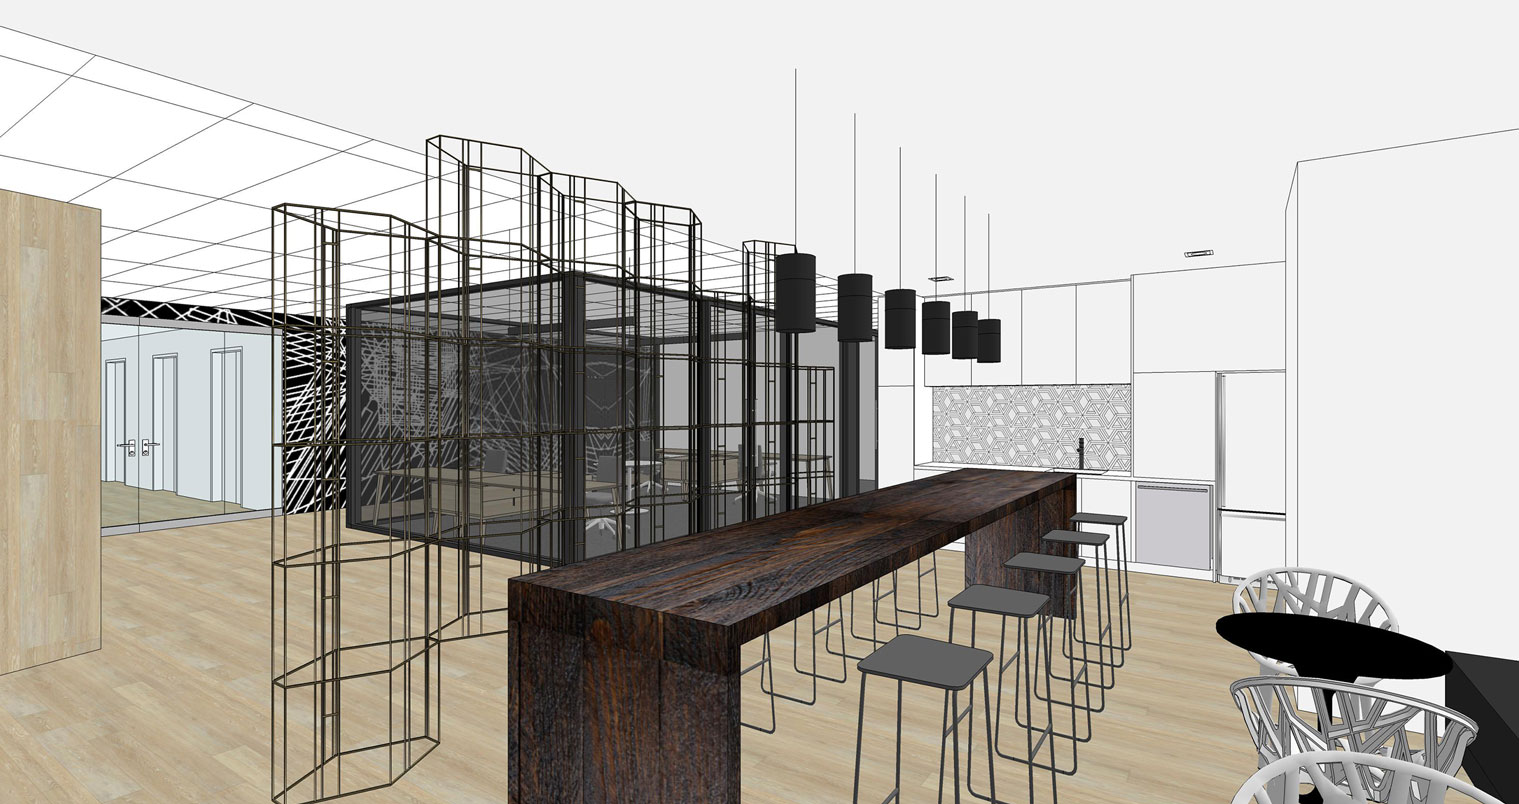 NHLPA rendering of servery with long wood bar table and stools in front of decorative metal screen